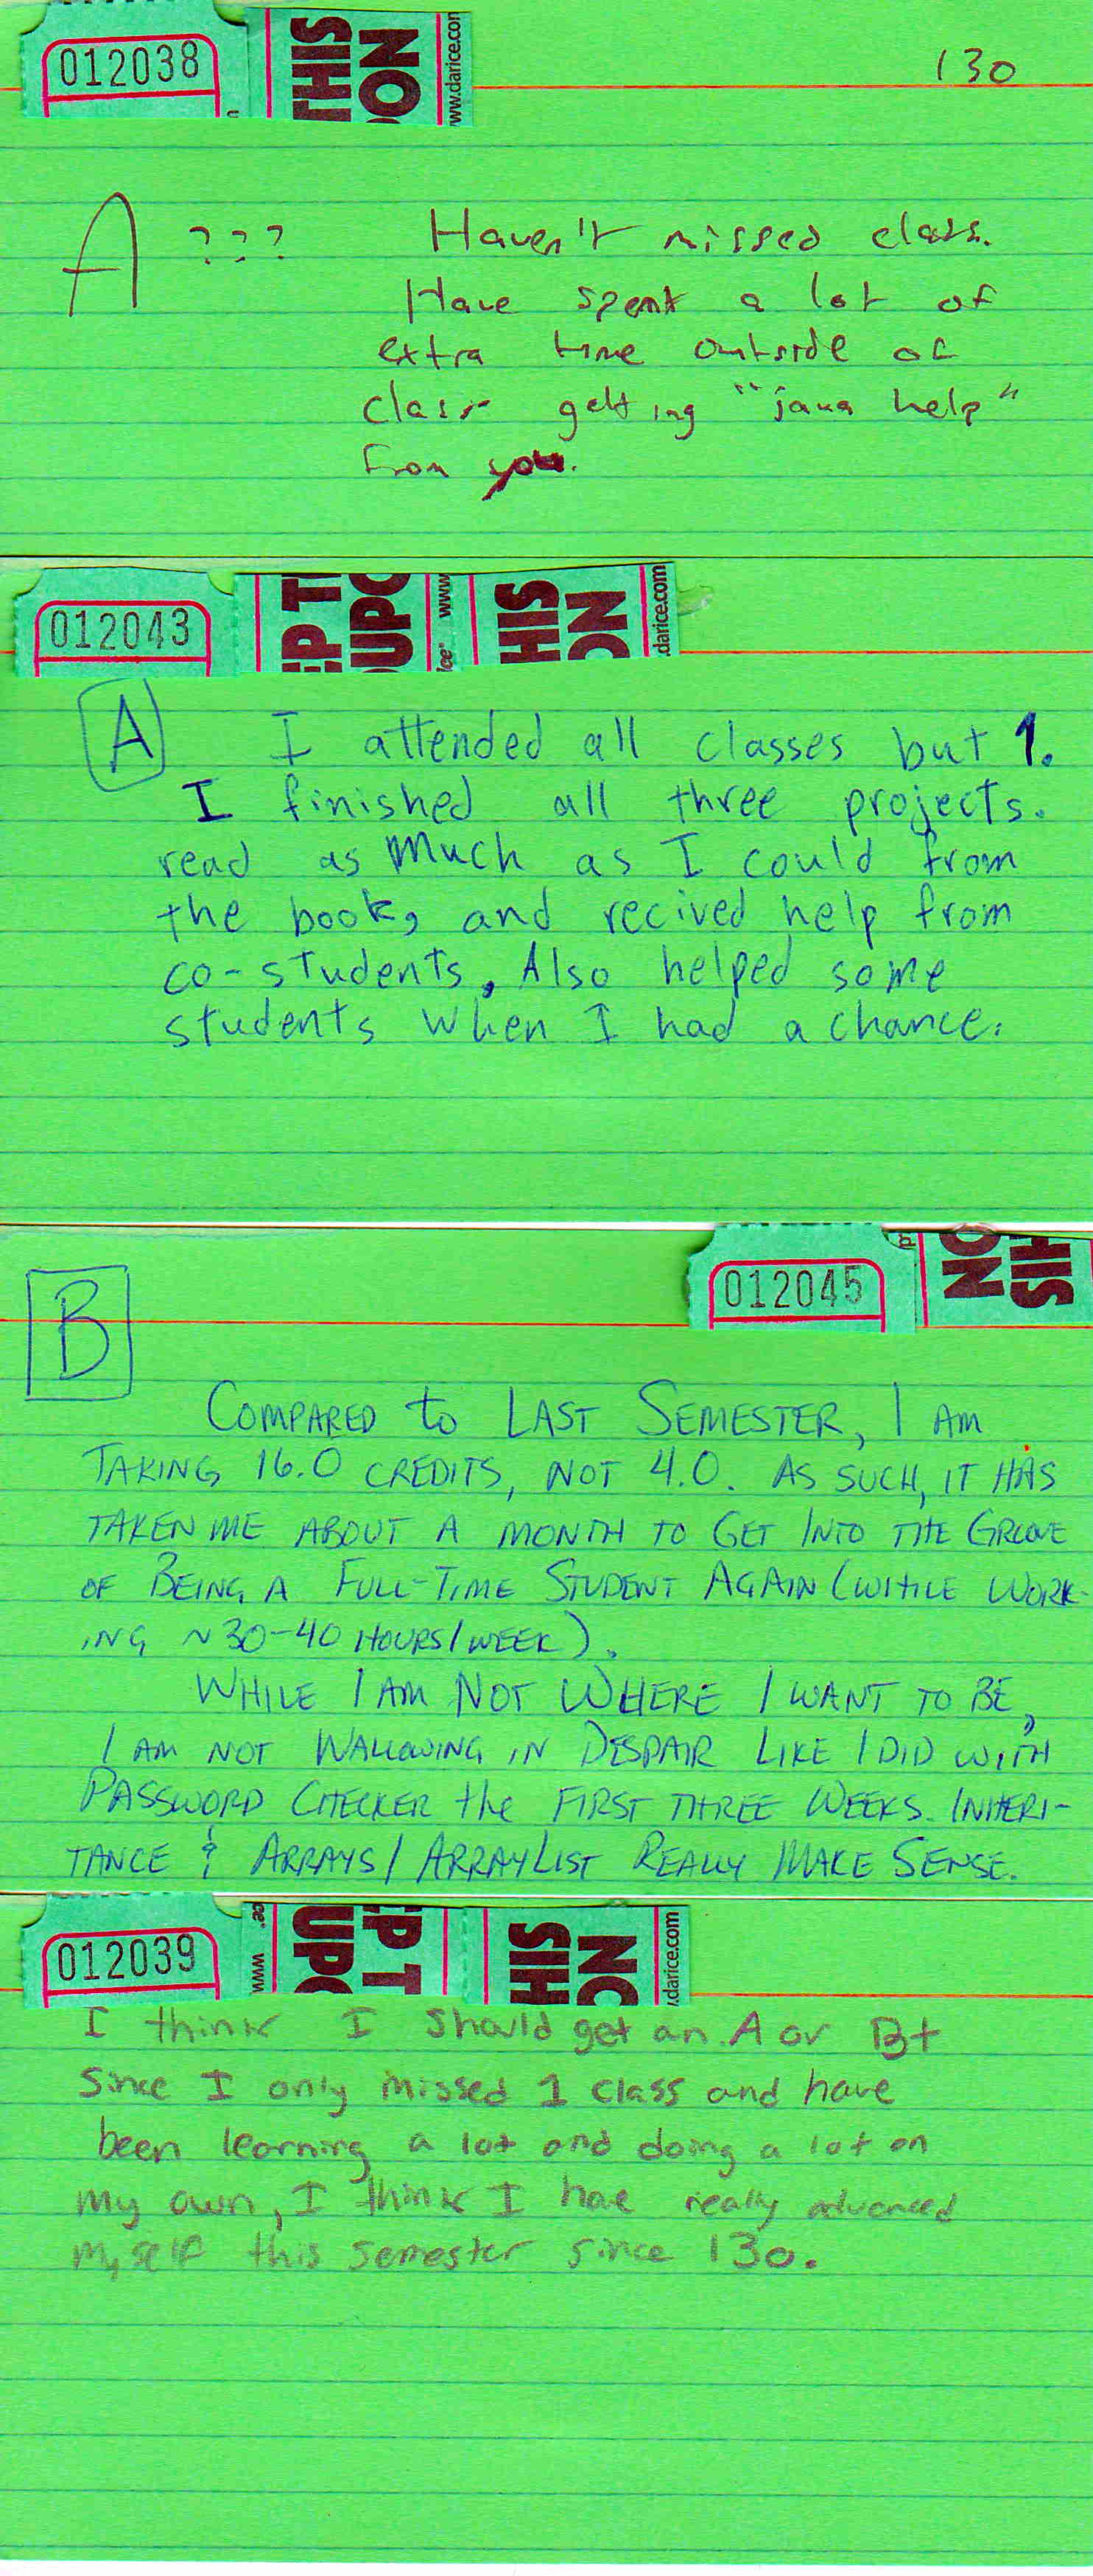 mid-term letter grade proposal card SP19